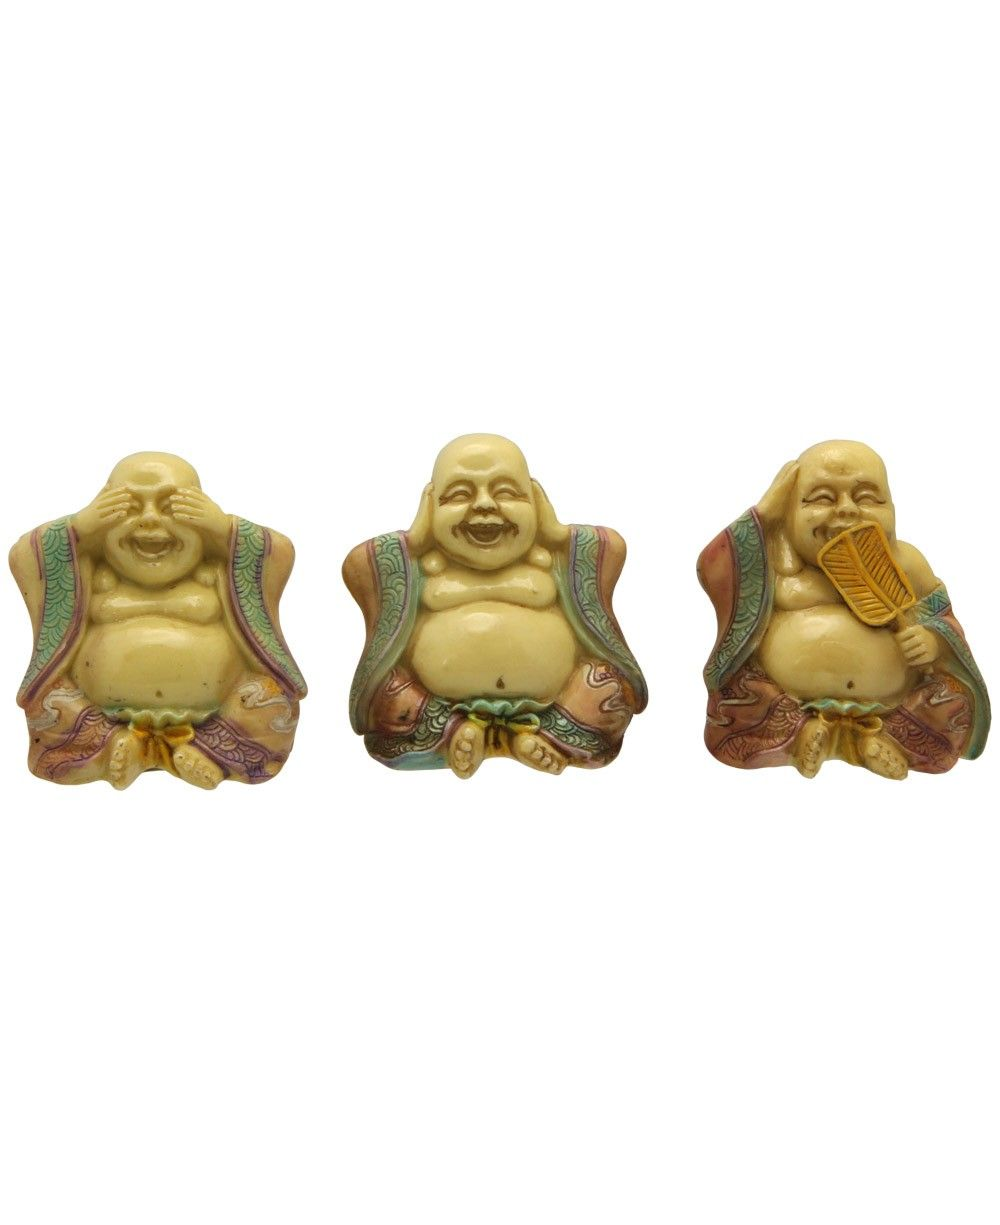 The image of the laughing buddha is based on a wandering chinese happy buddha likeness is symbolic of joy mirth and contentment and it is said that rubbing the head or belly of a happy buddha statue brings good luck and buycottarizona